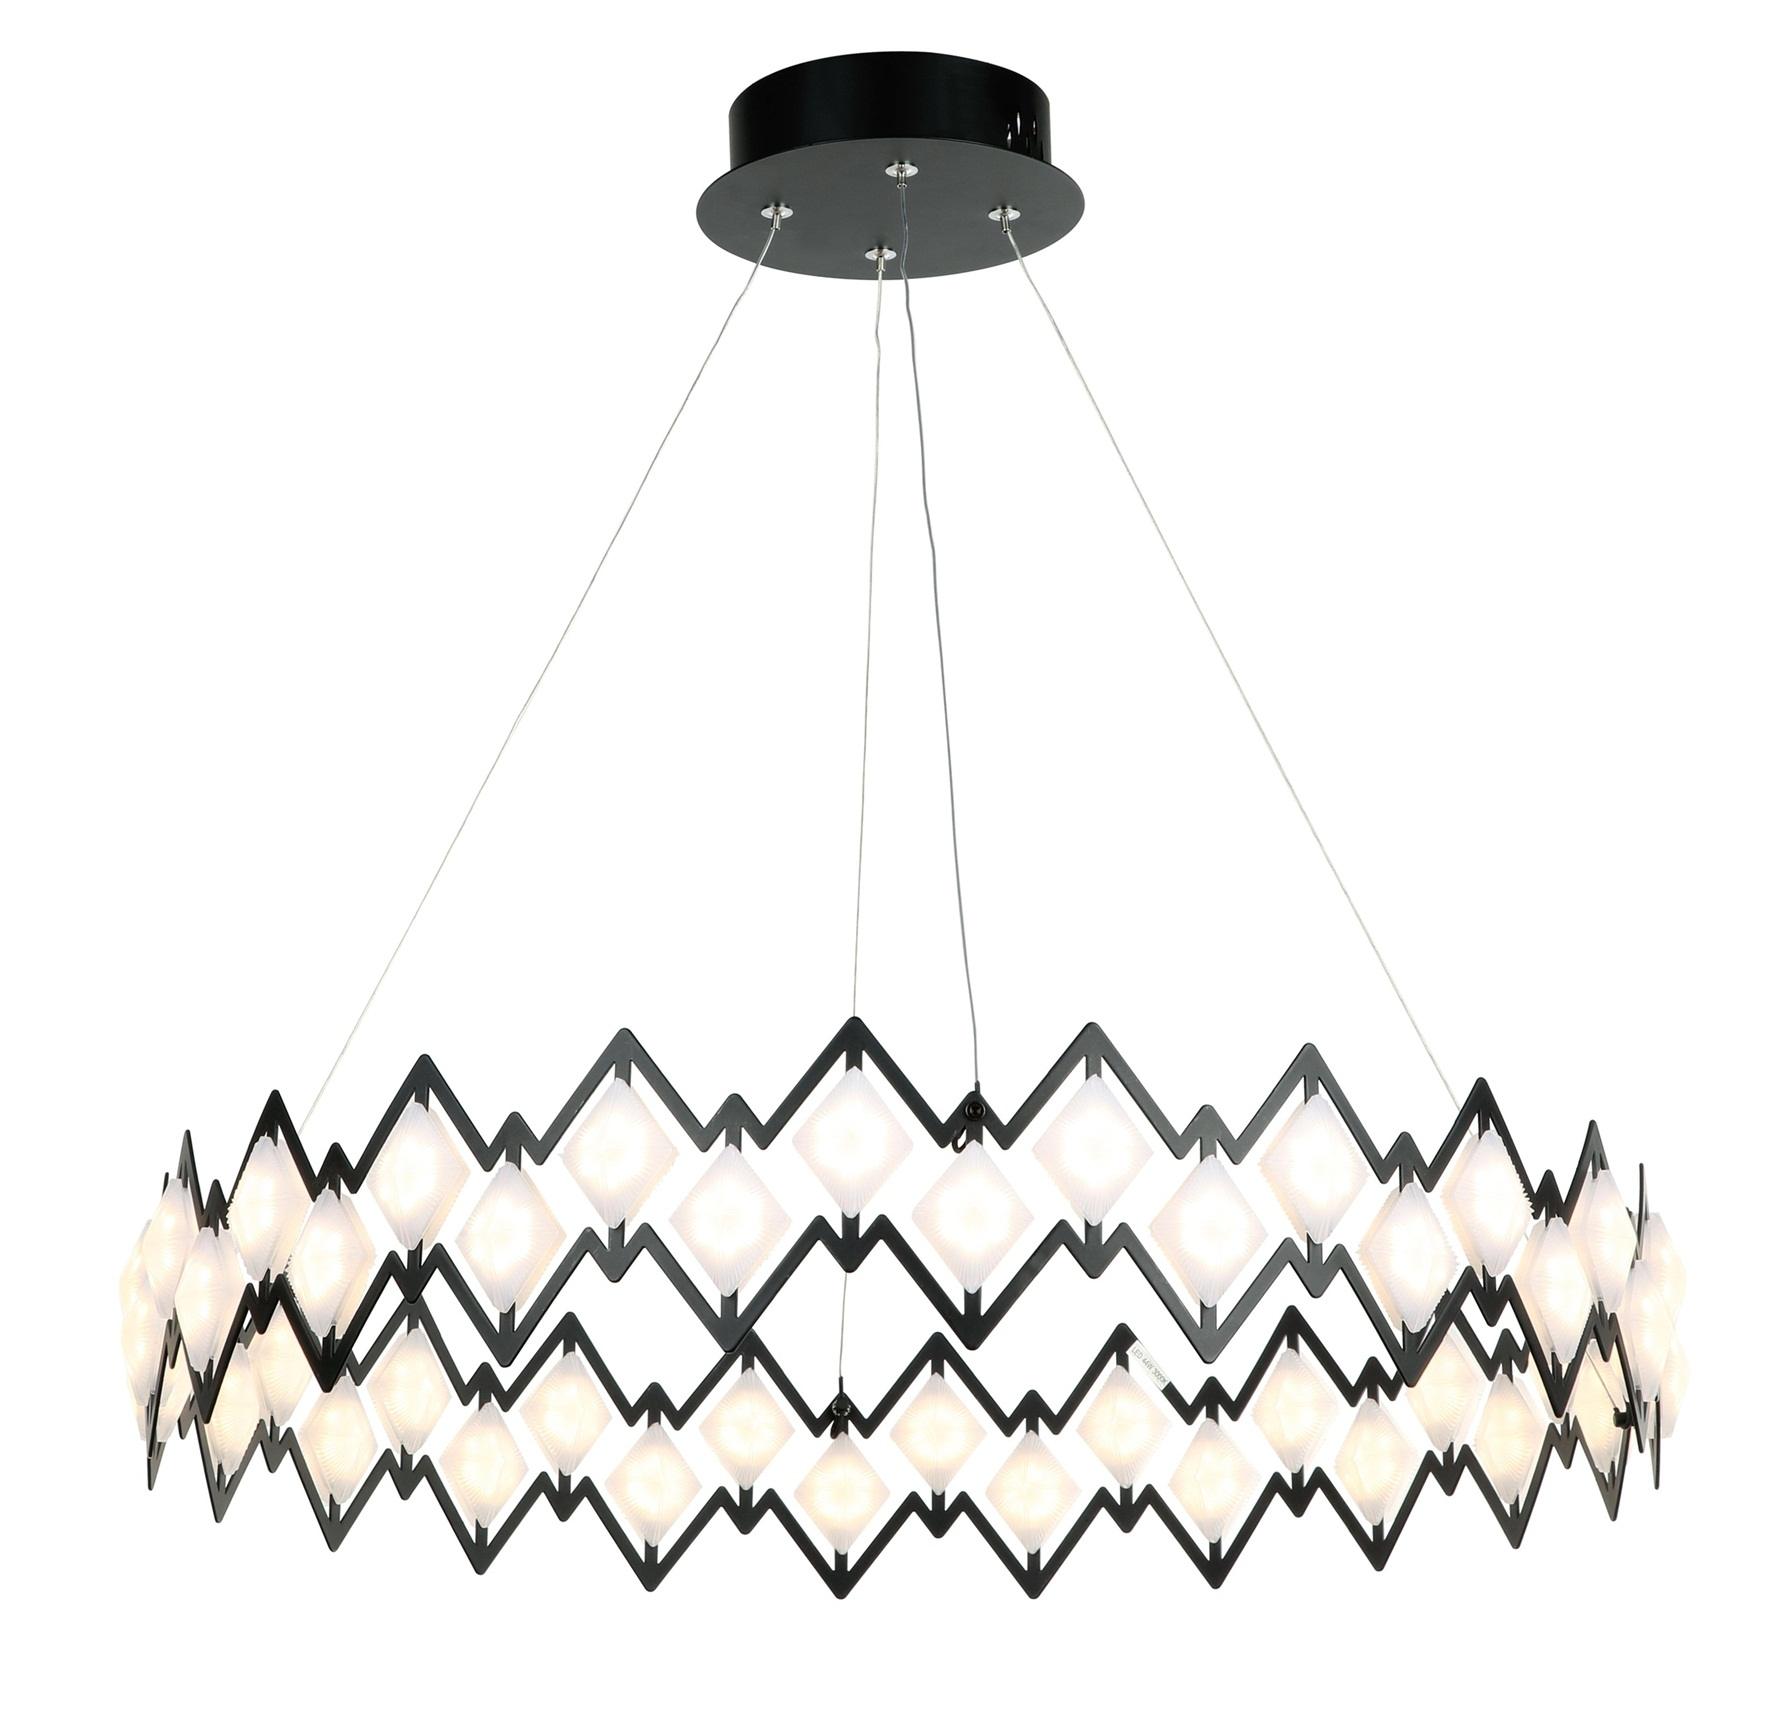 decorative hanging pendant lights 66663a24w free quote for study room-1